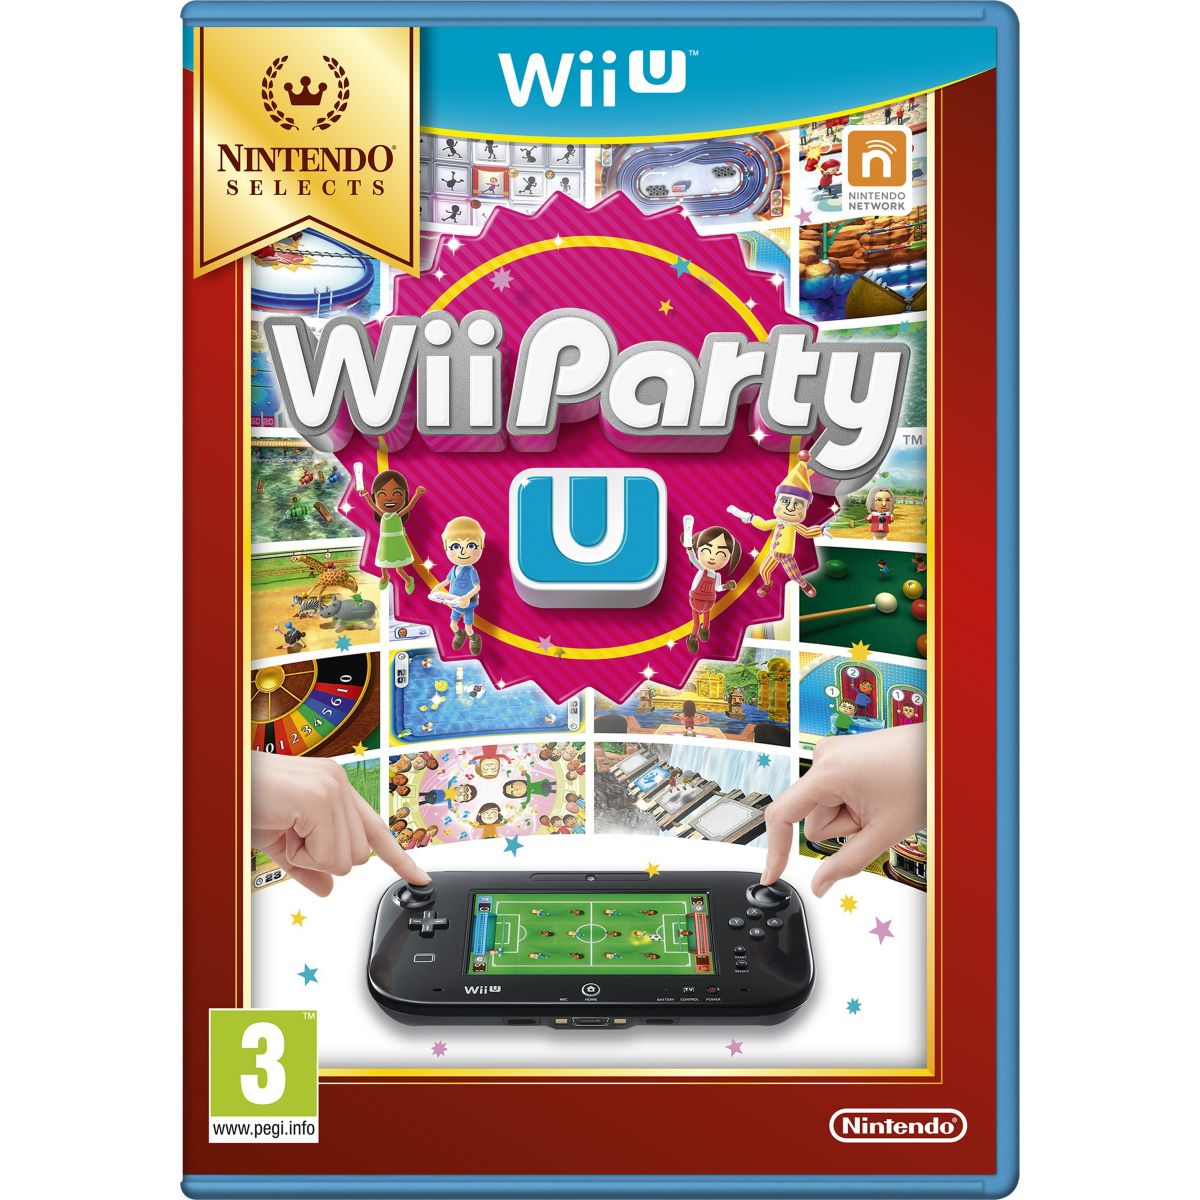 Jeu Wii U NINTENDO Wii Party U Selects